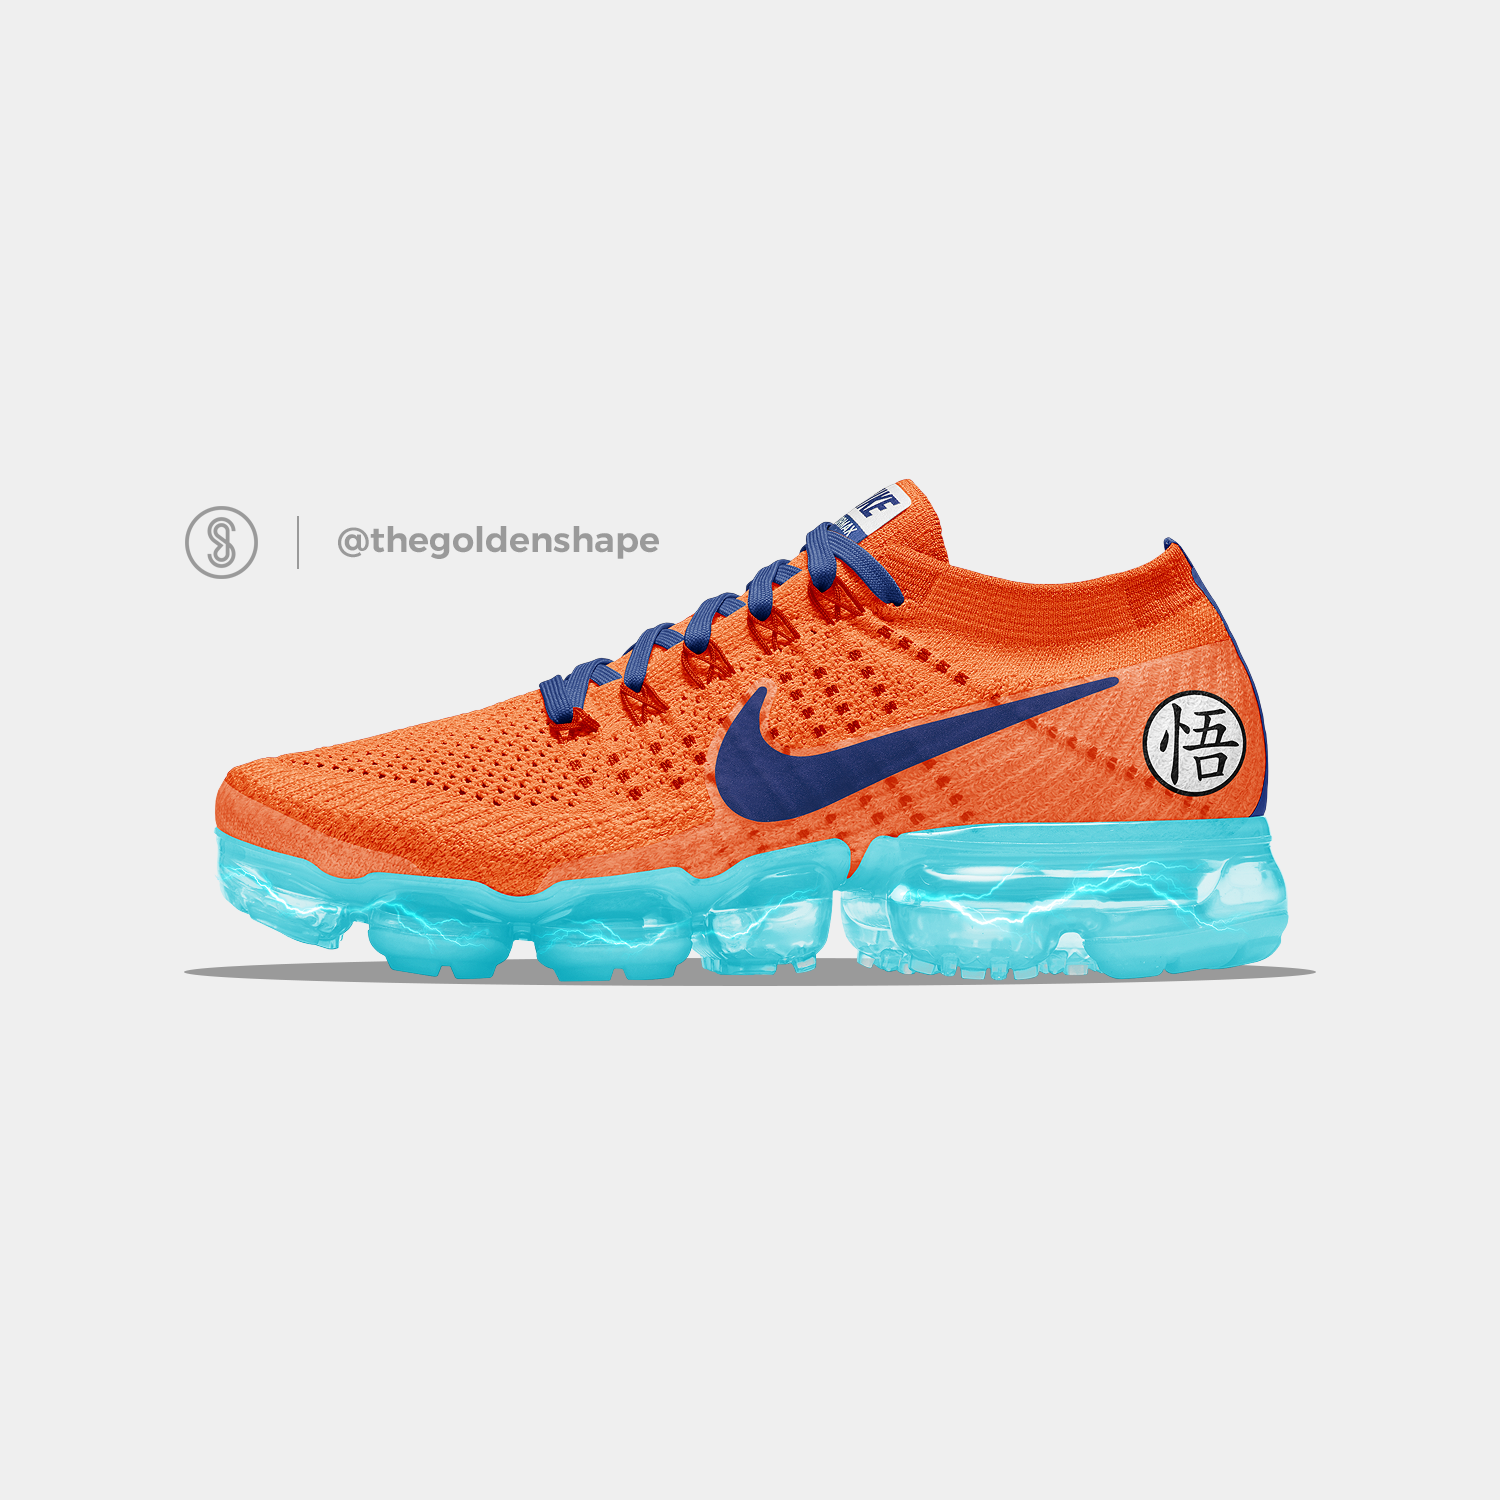 new product 636c8 f8c64 Dragon Ball Super x Nike Air VaporMax Goku